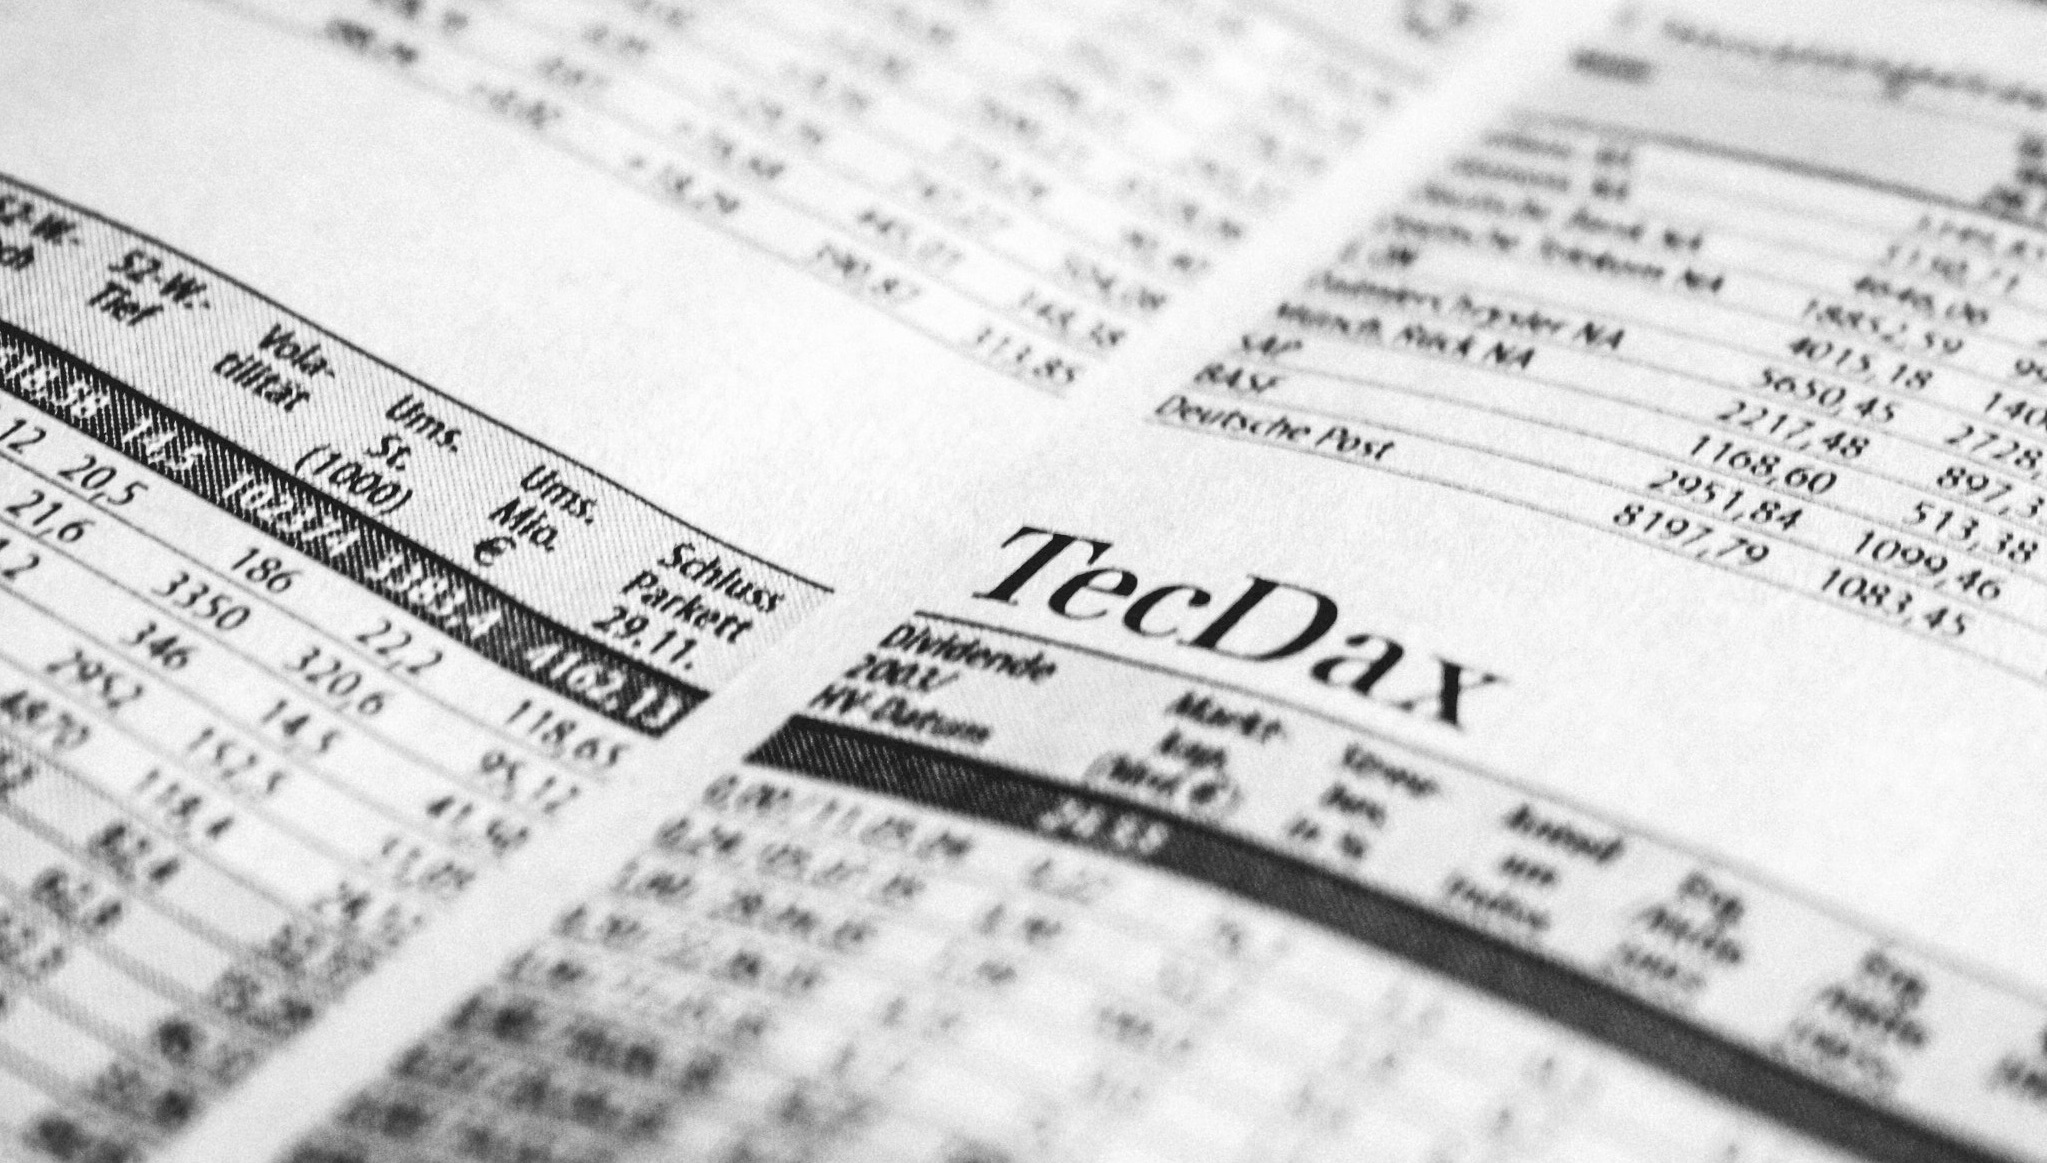 stock market quotes in newspaper